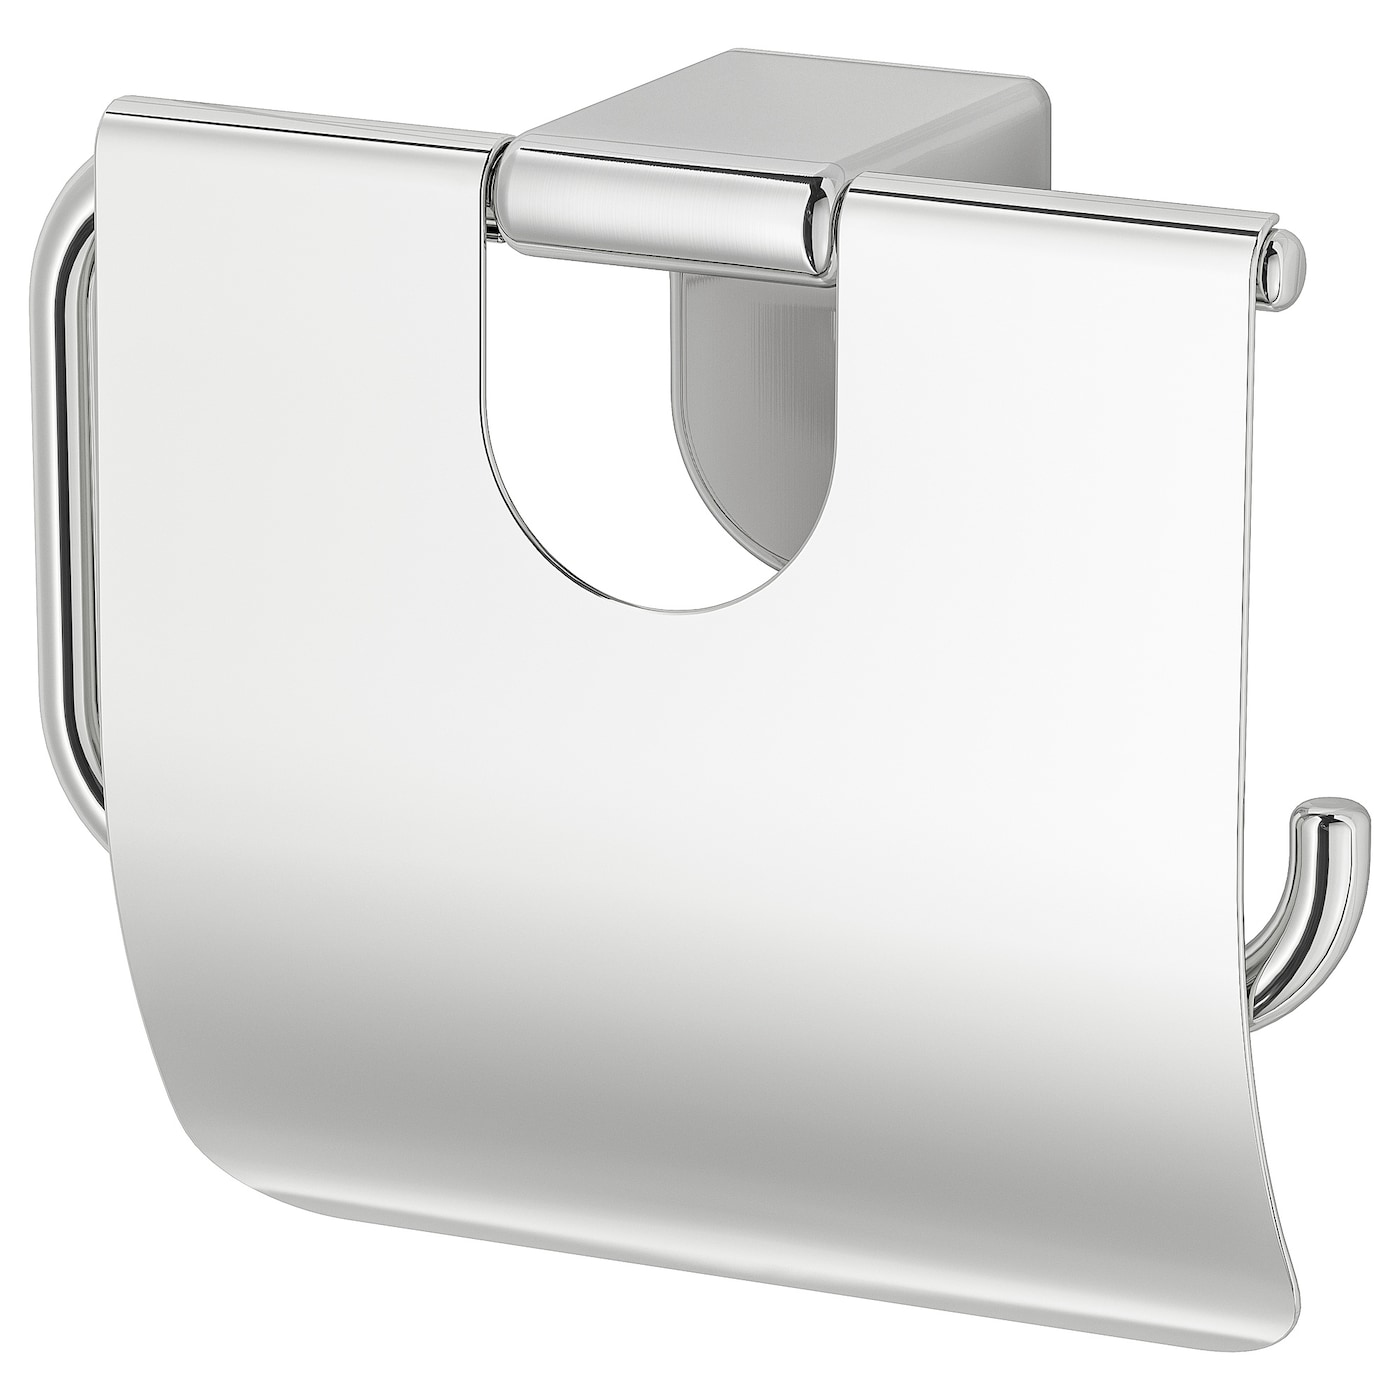 IKEA KALKGRUND toilet roll holder Easy to clean since the surface is clear lacquered.